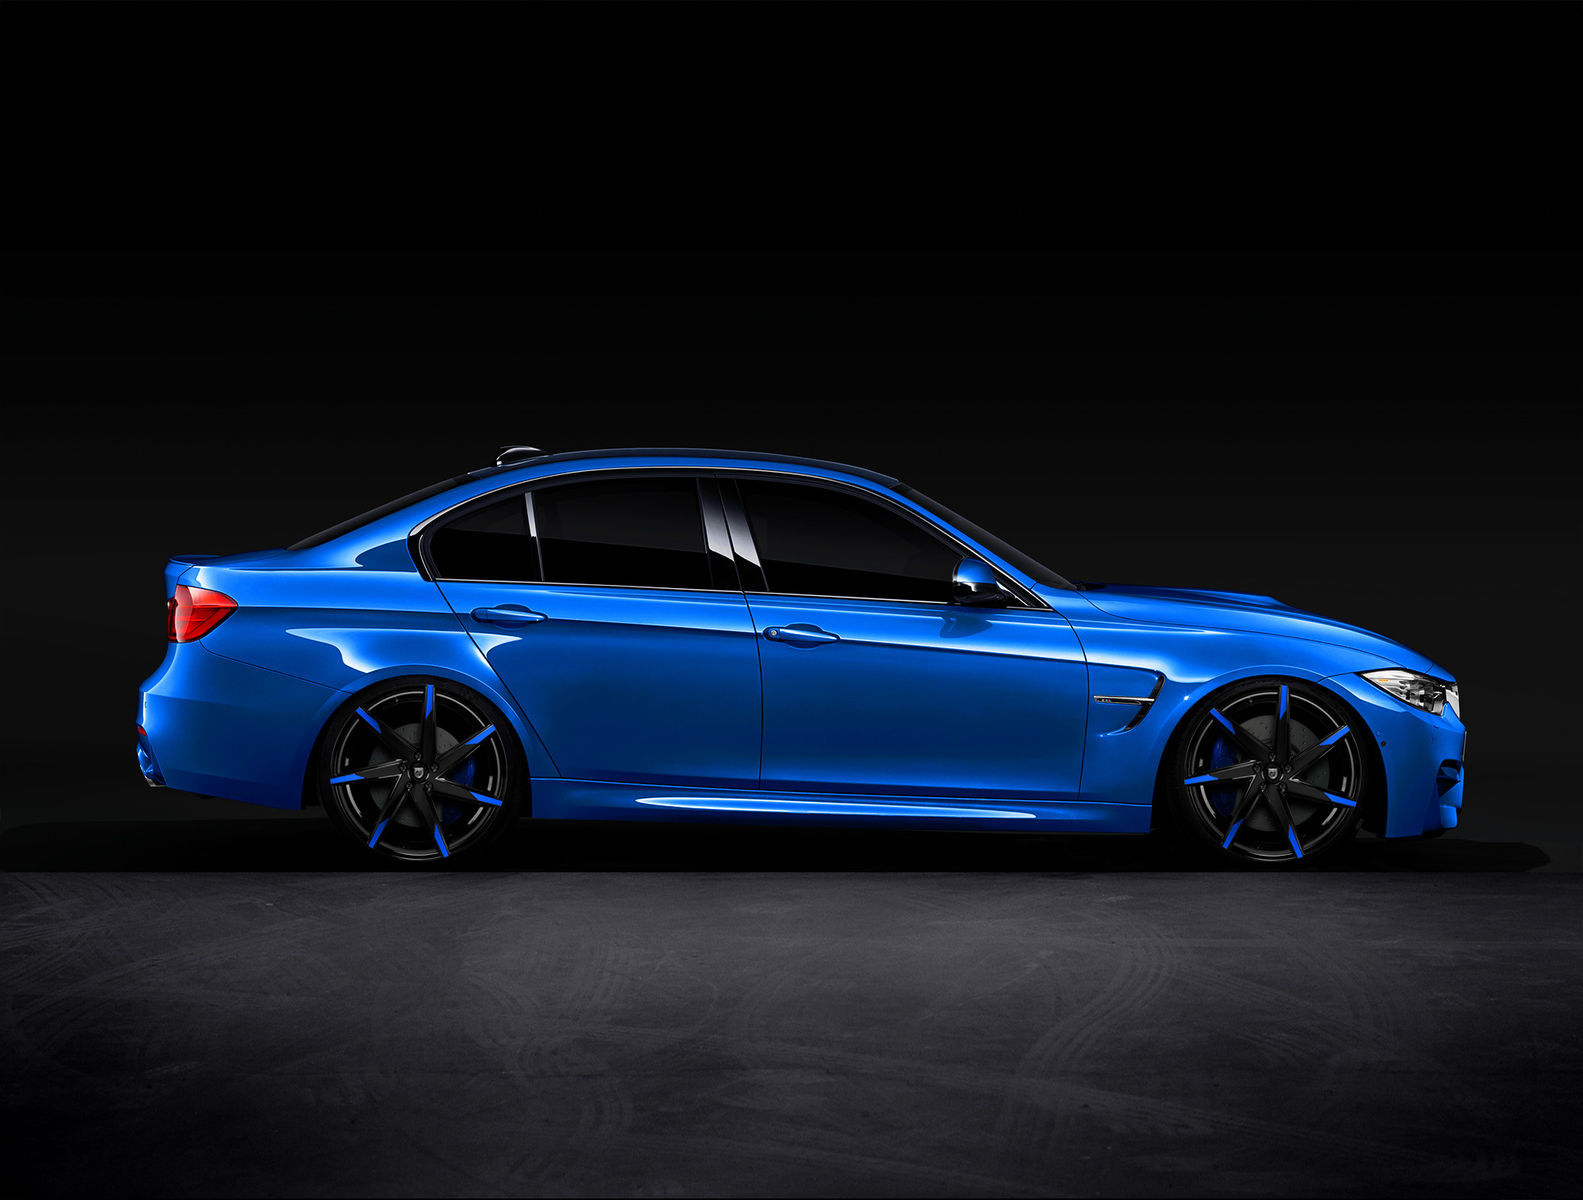 2014 BMW M3 | BMW '14 M3 on Lexani CSS-7s